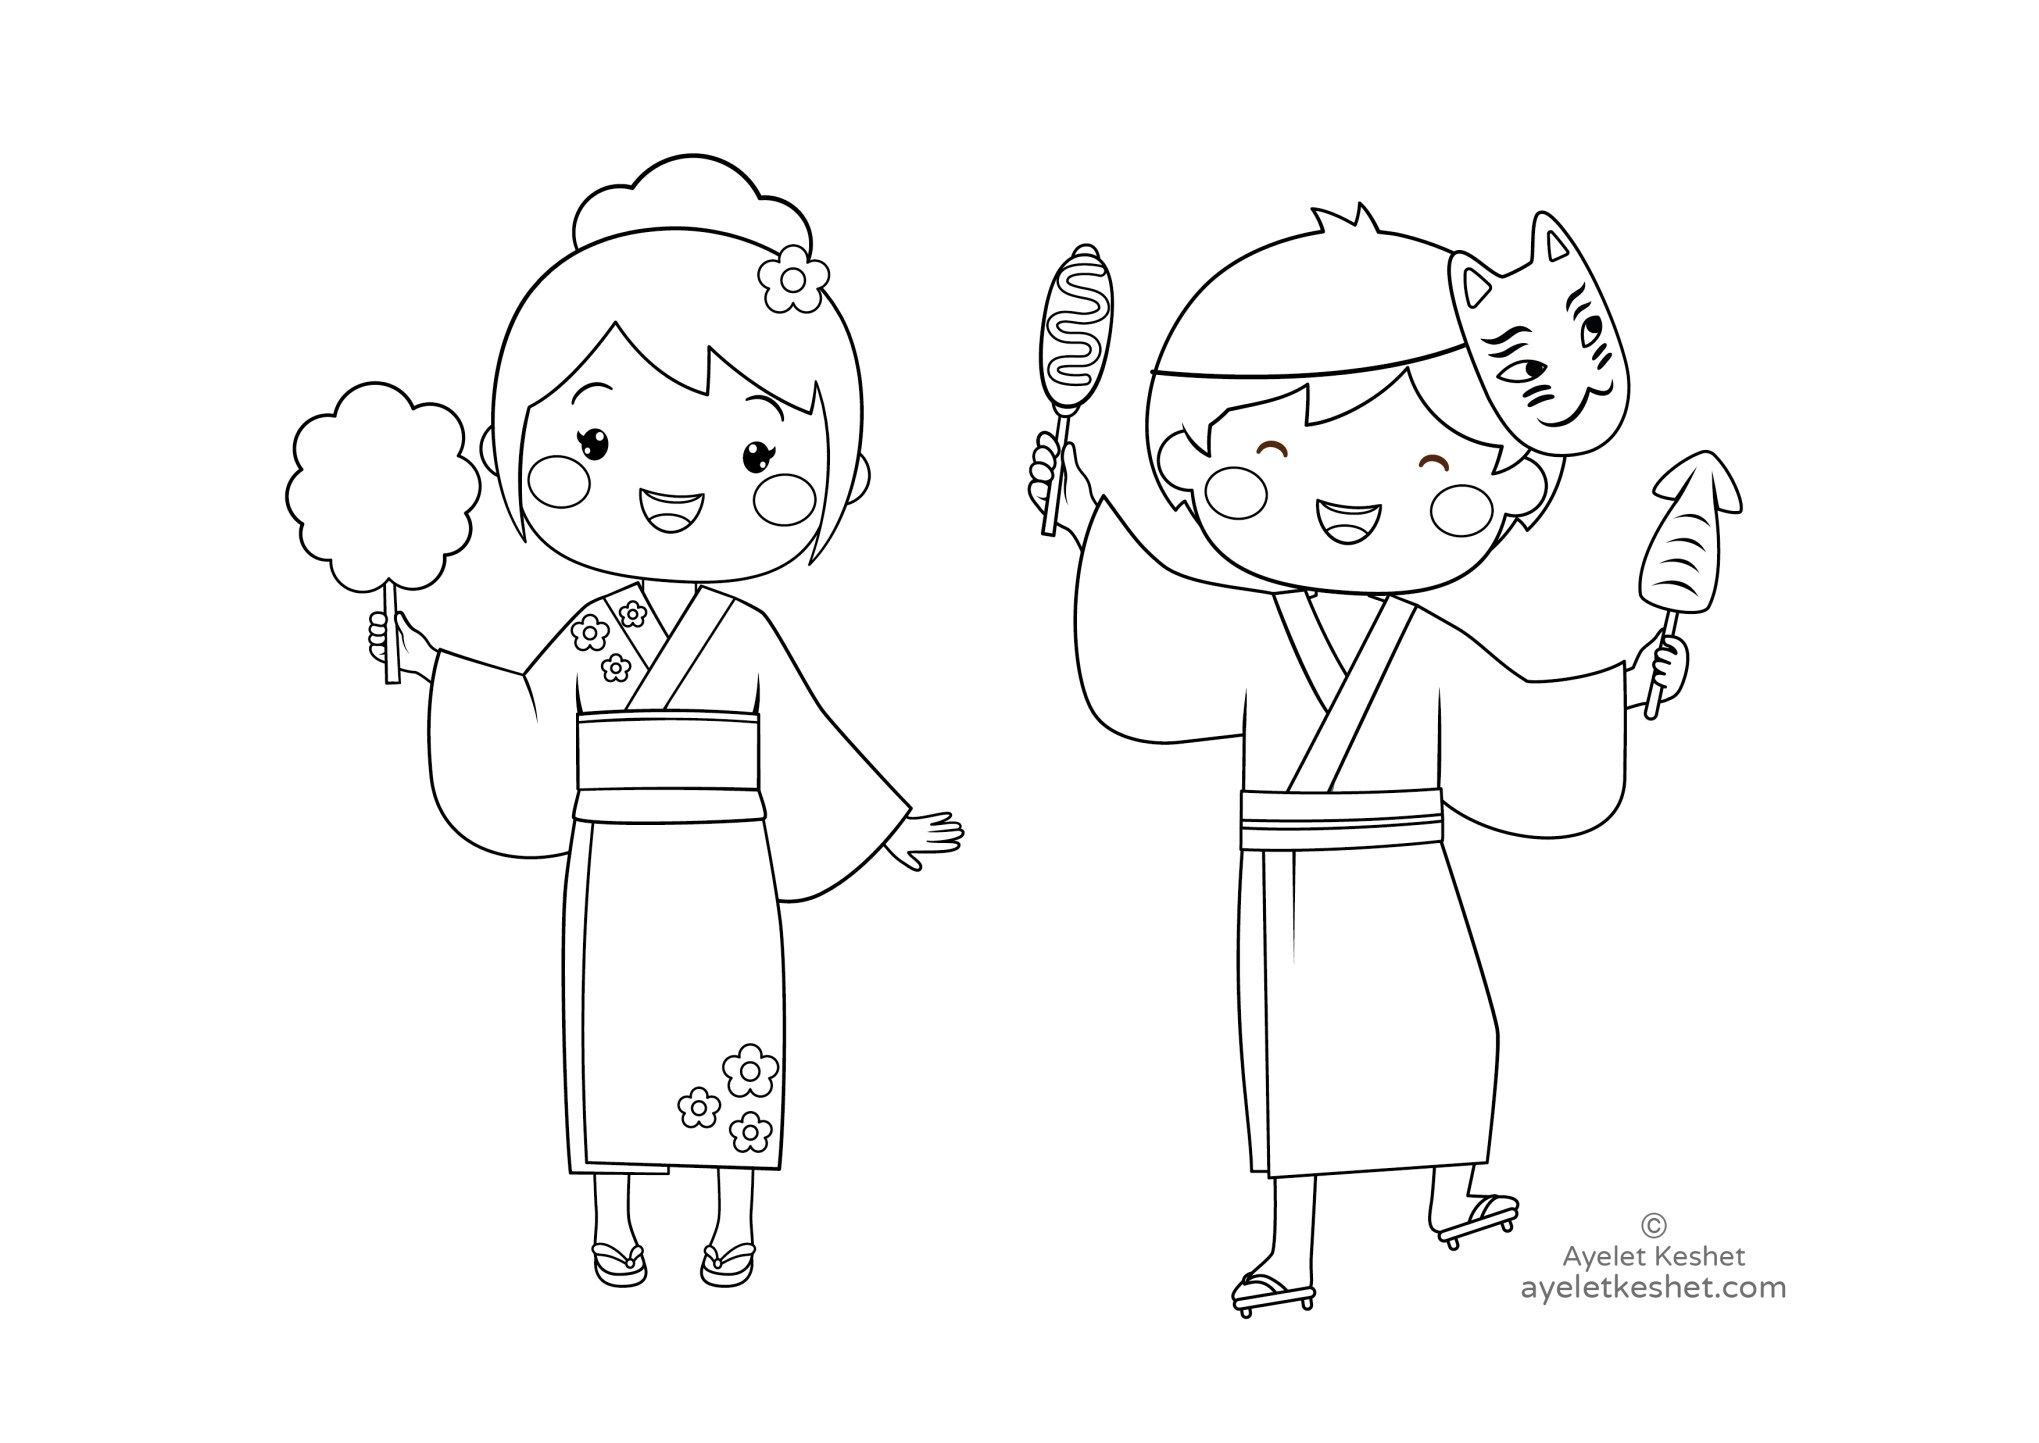 Free Coloring Pages About Japan For Kids Ayelet Keshet Japan For Kids Coloring Pages Free Coloring Pages